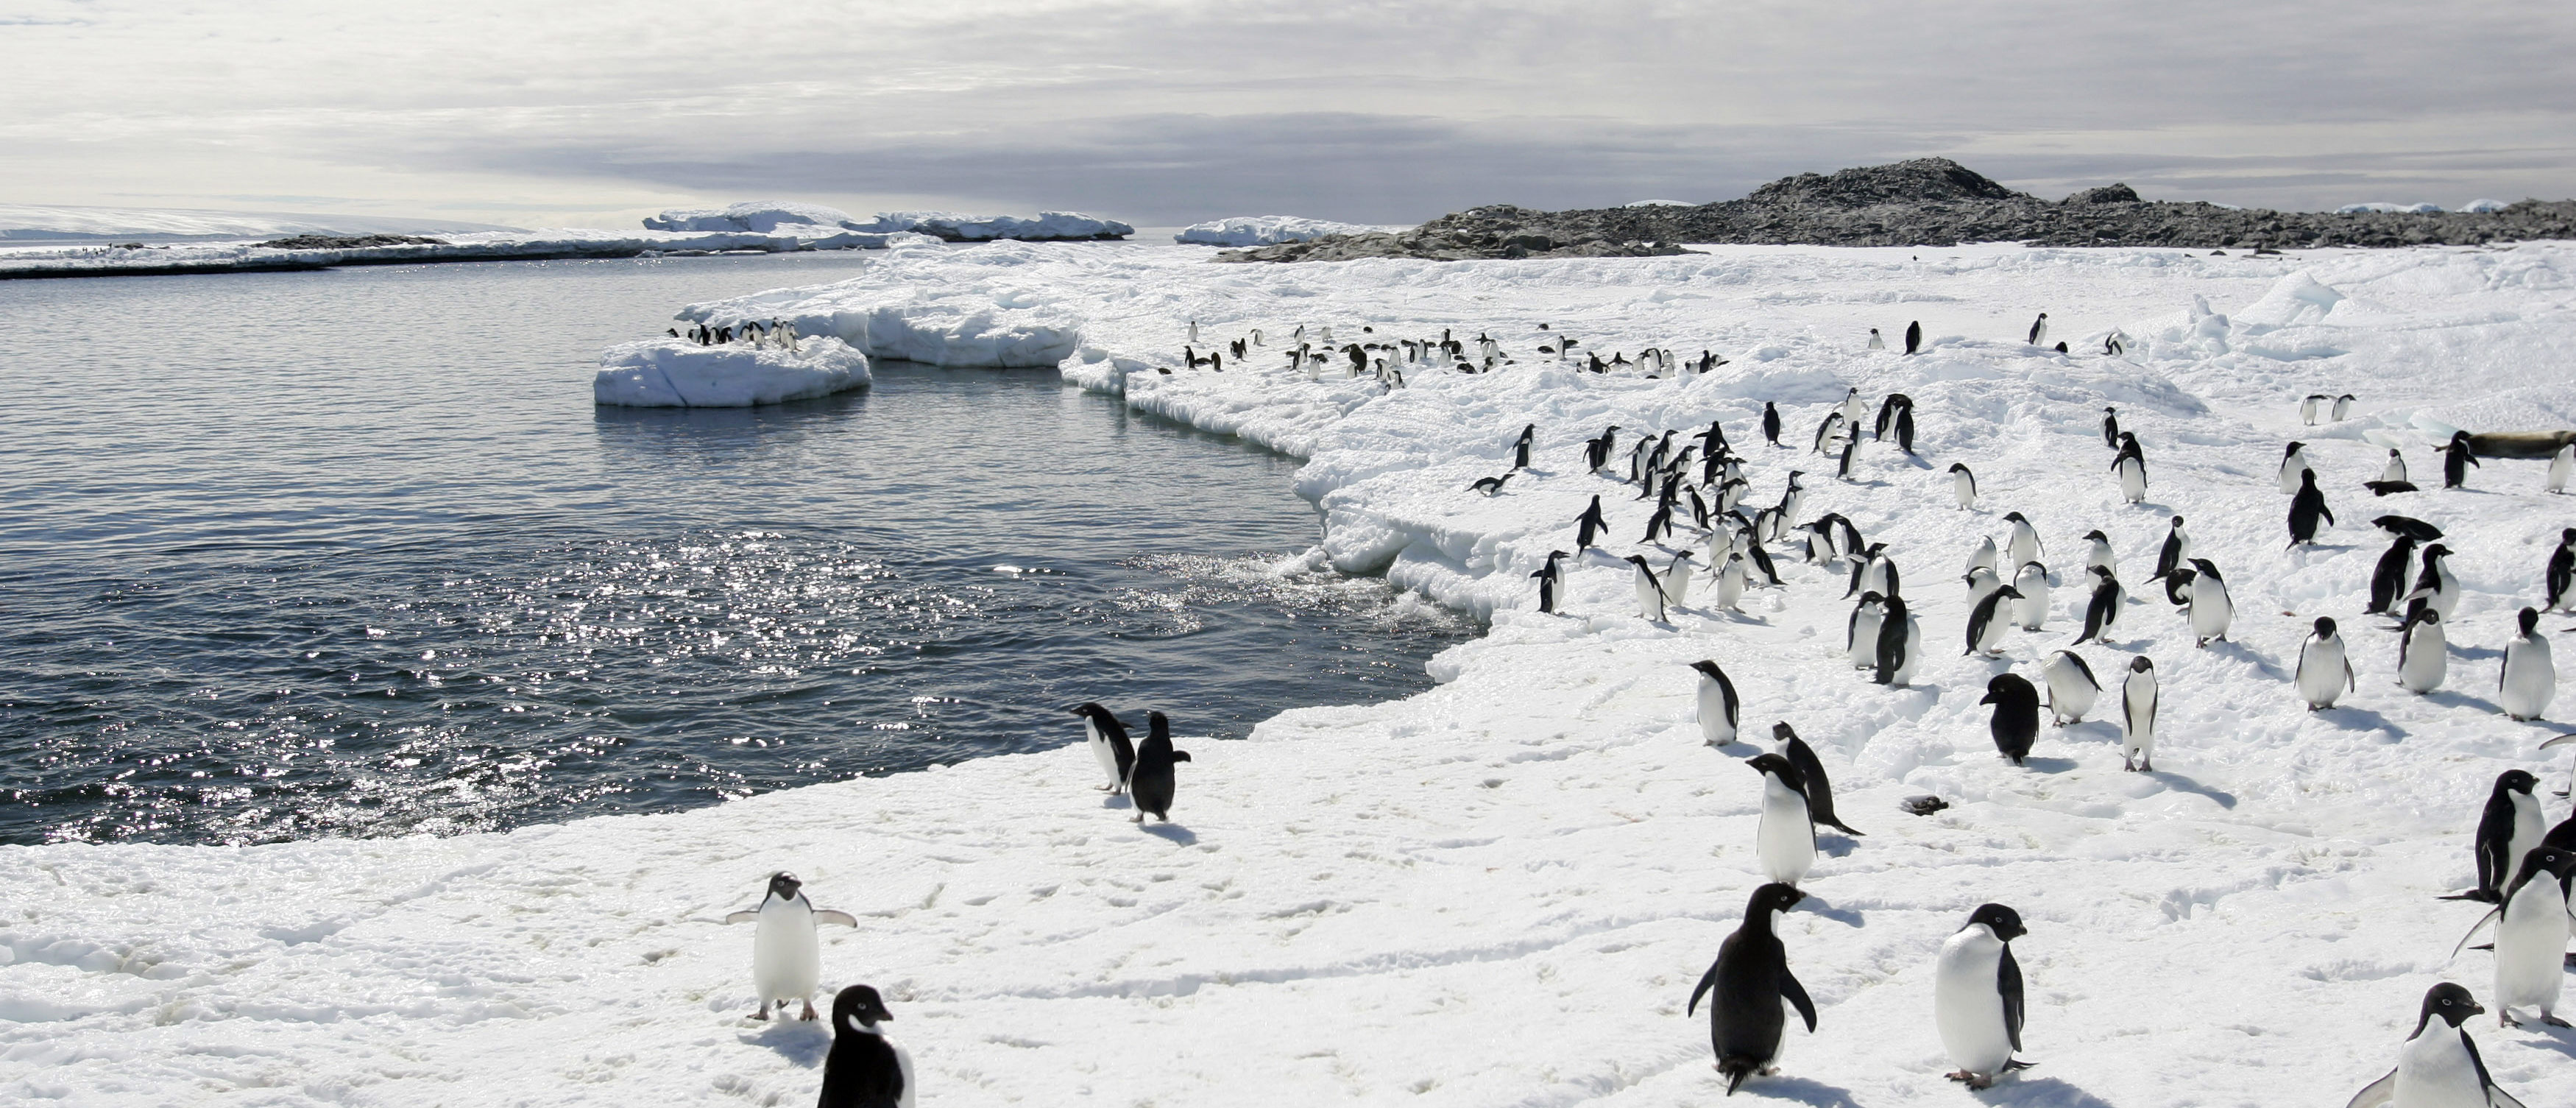 To match story ENVIRONMENT-ANTARCTIC/SEEDS